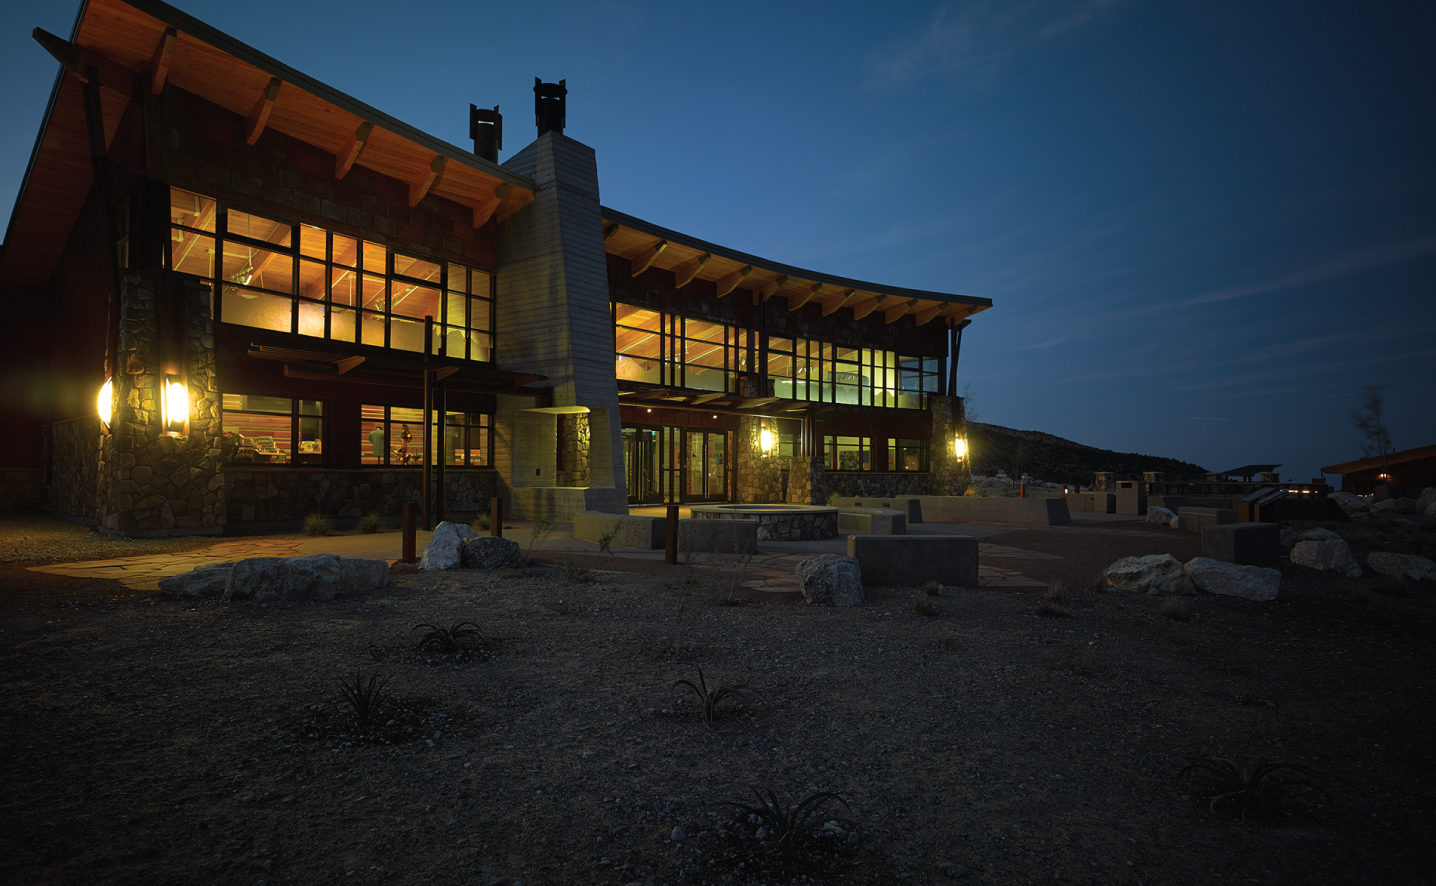 The Spring Mountains Visitor Gateway at night, designed by LGA Architecture.